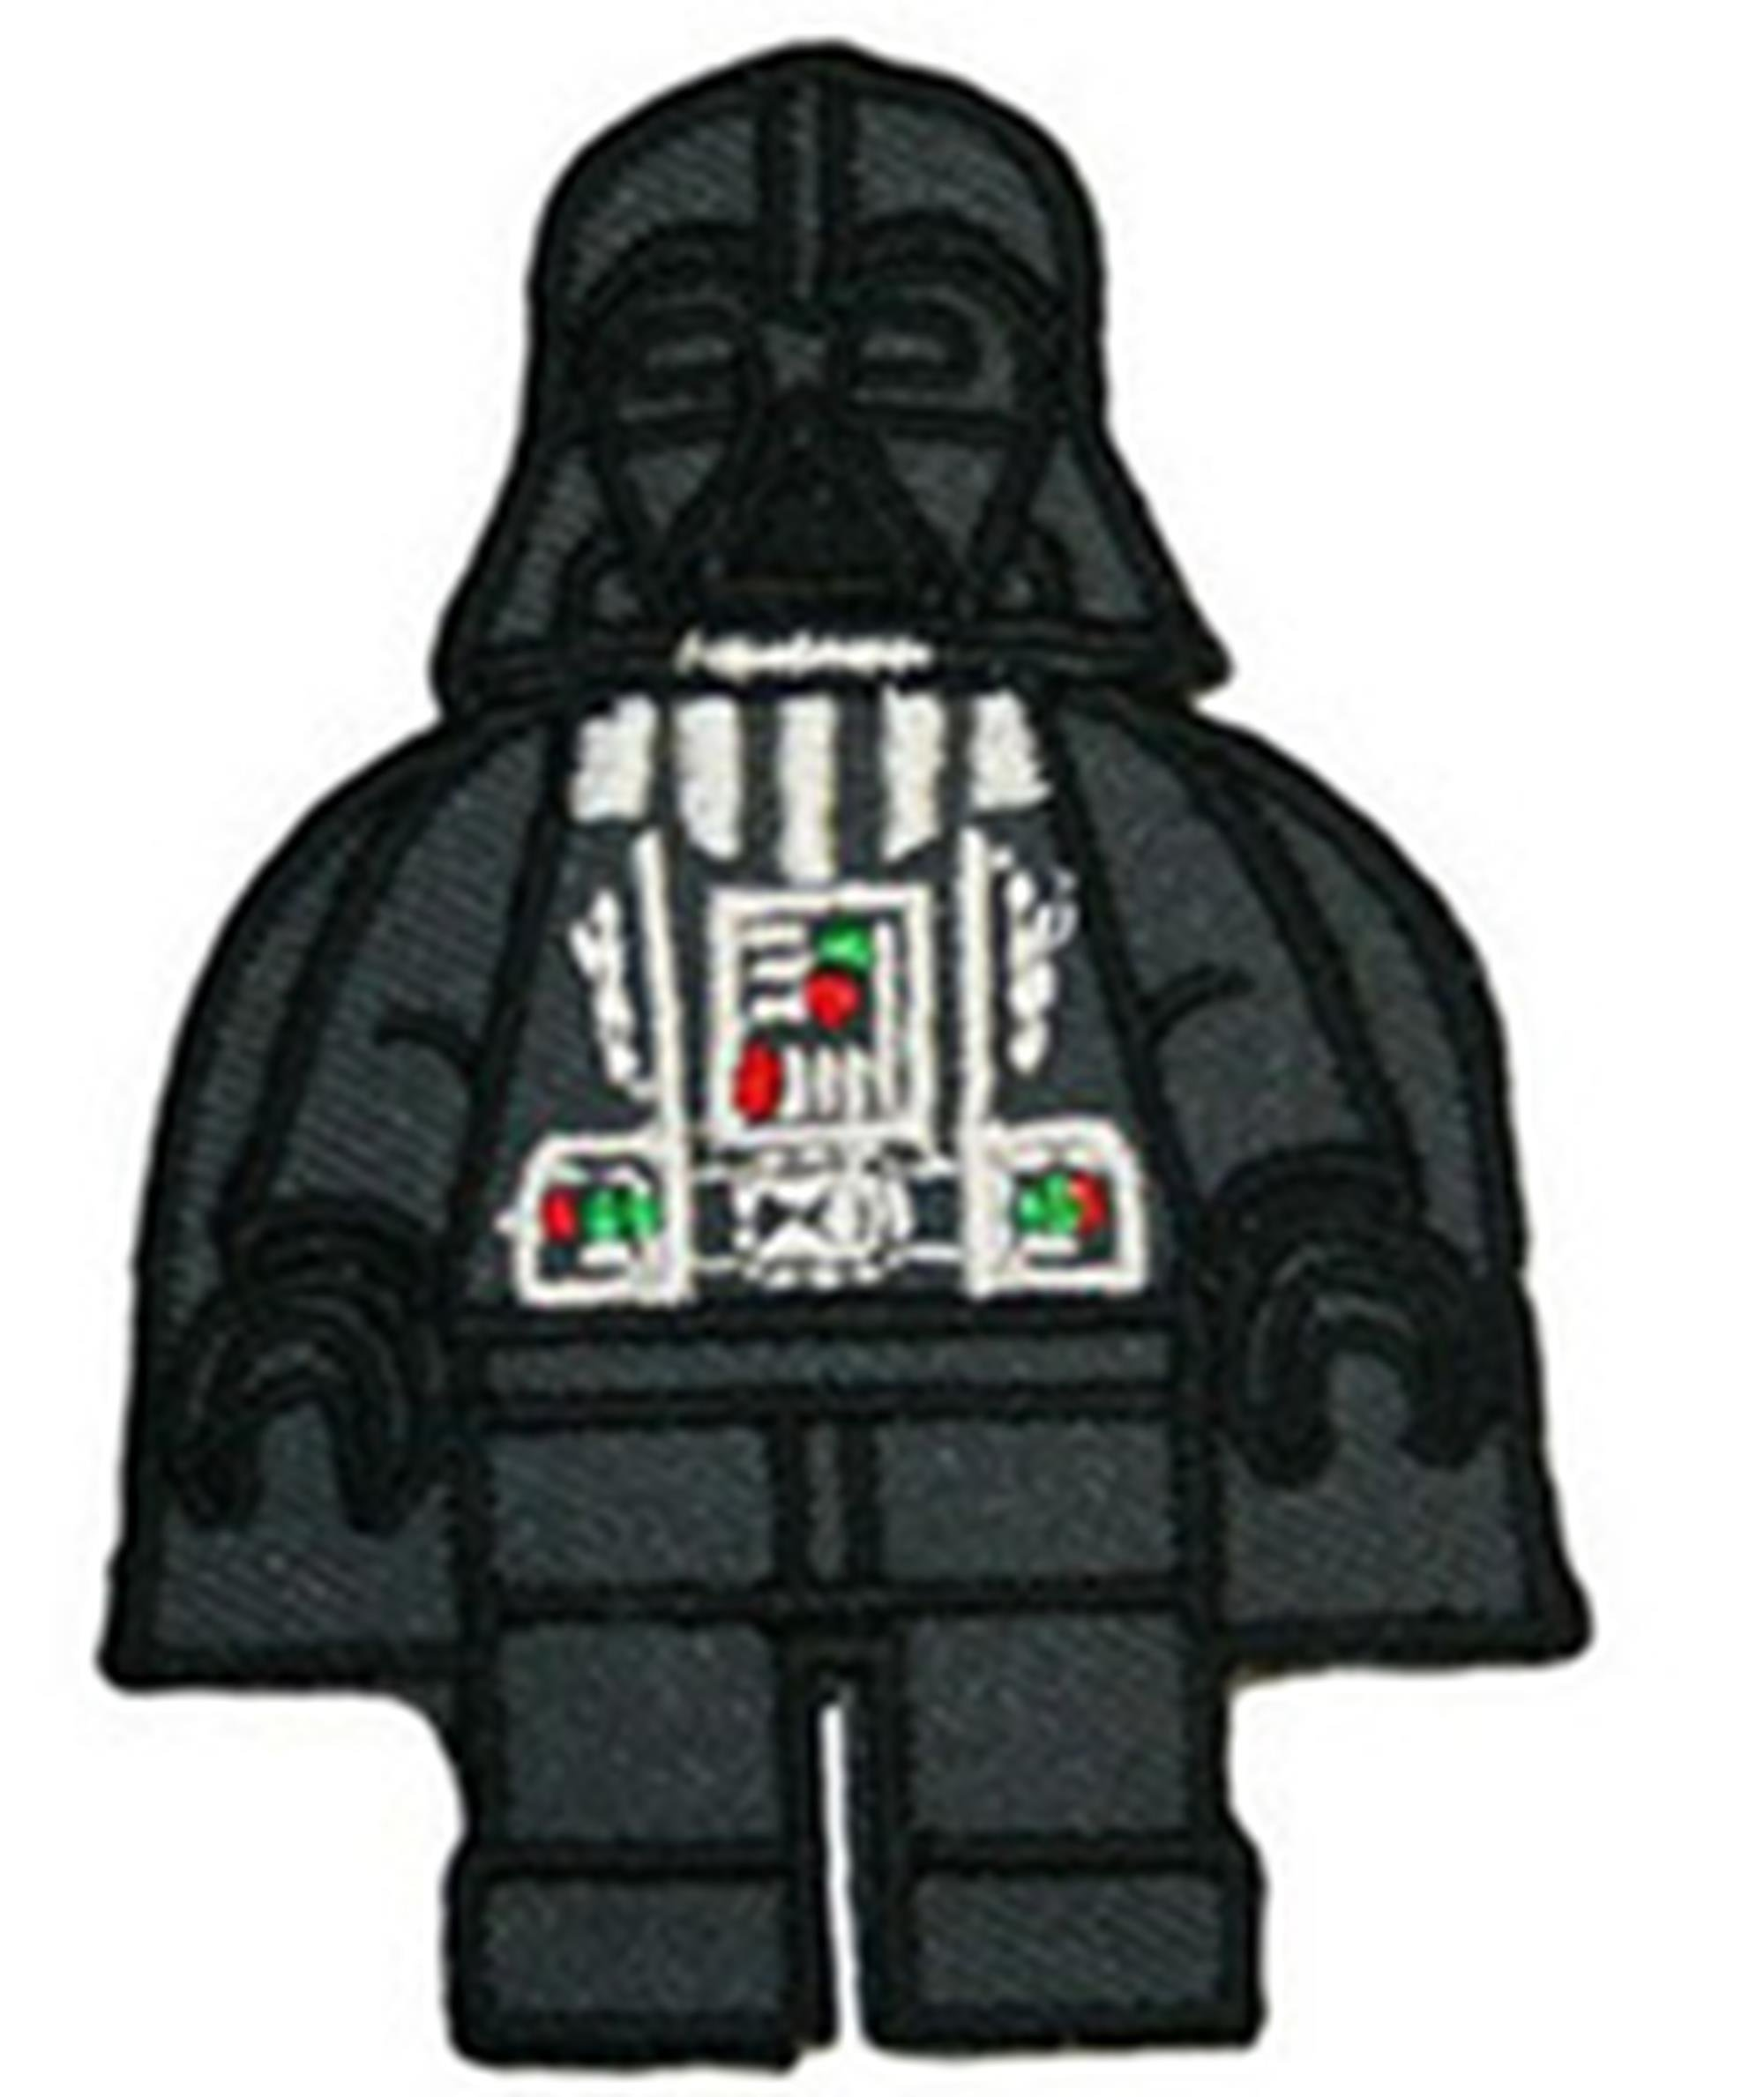 Blue Heron Star Wars Lego Darth Vader Sith 3'' Uniform Embroidered Iron/Sew-on Applique Patch by LEGO